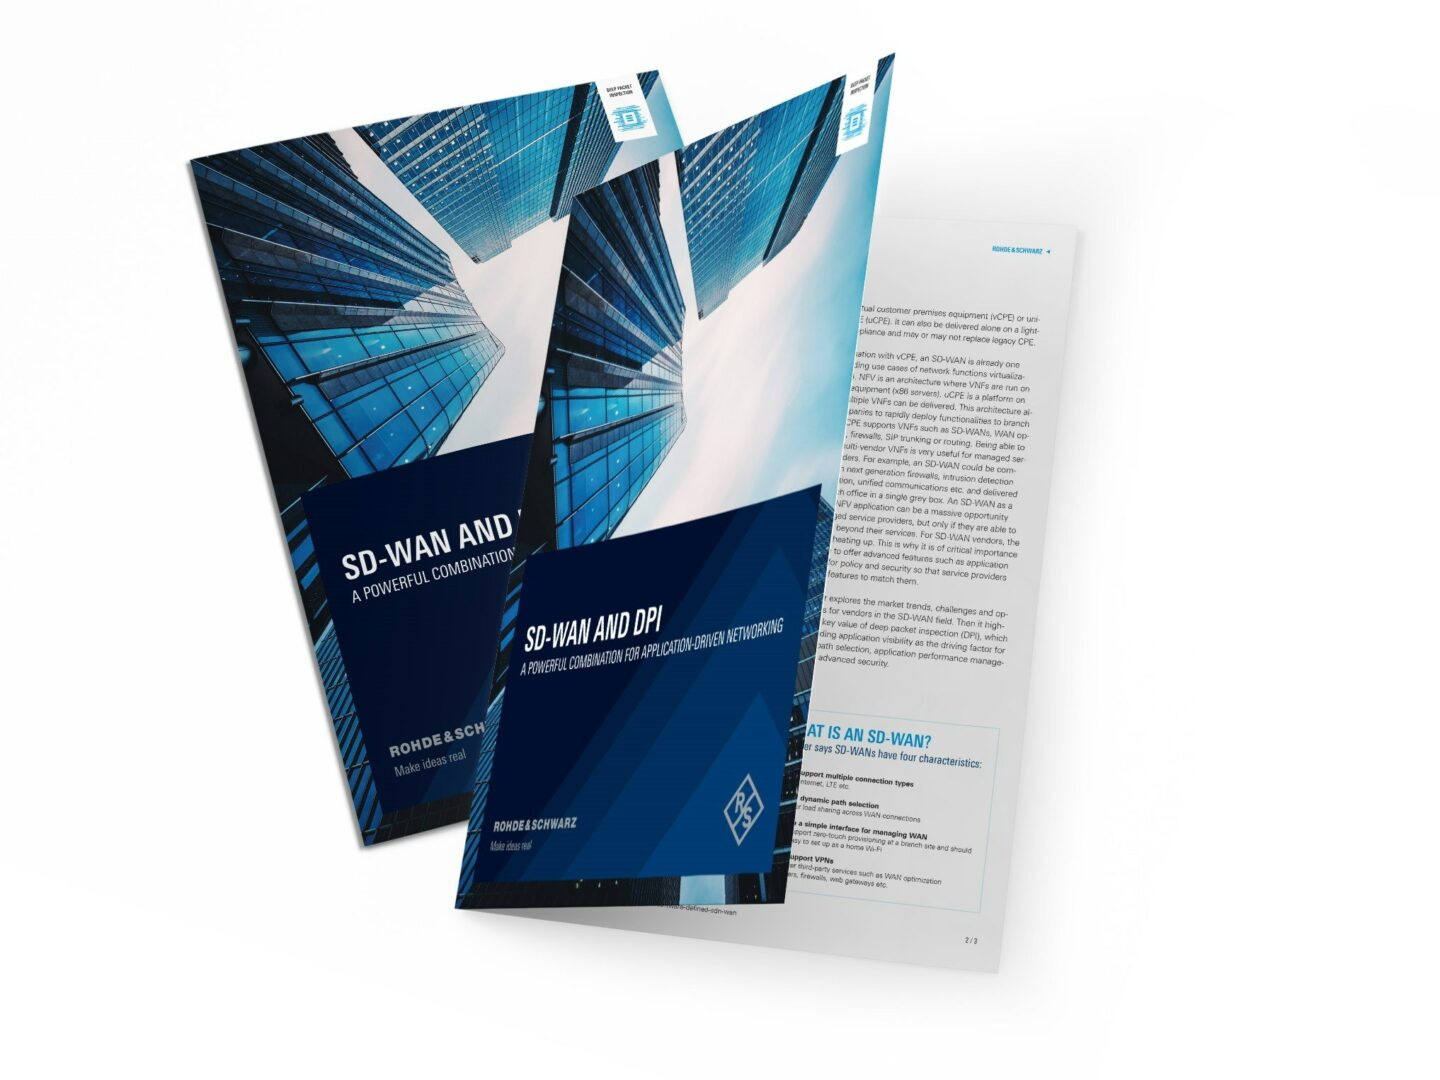 Whitepaper: SD WAN and DPI - A powerful combination for application-driven networking